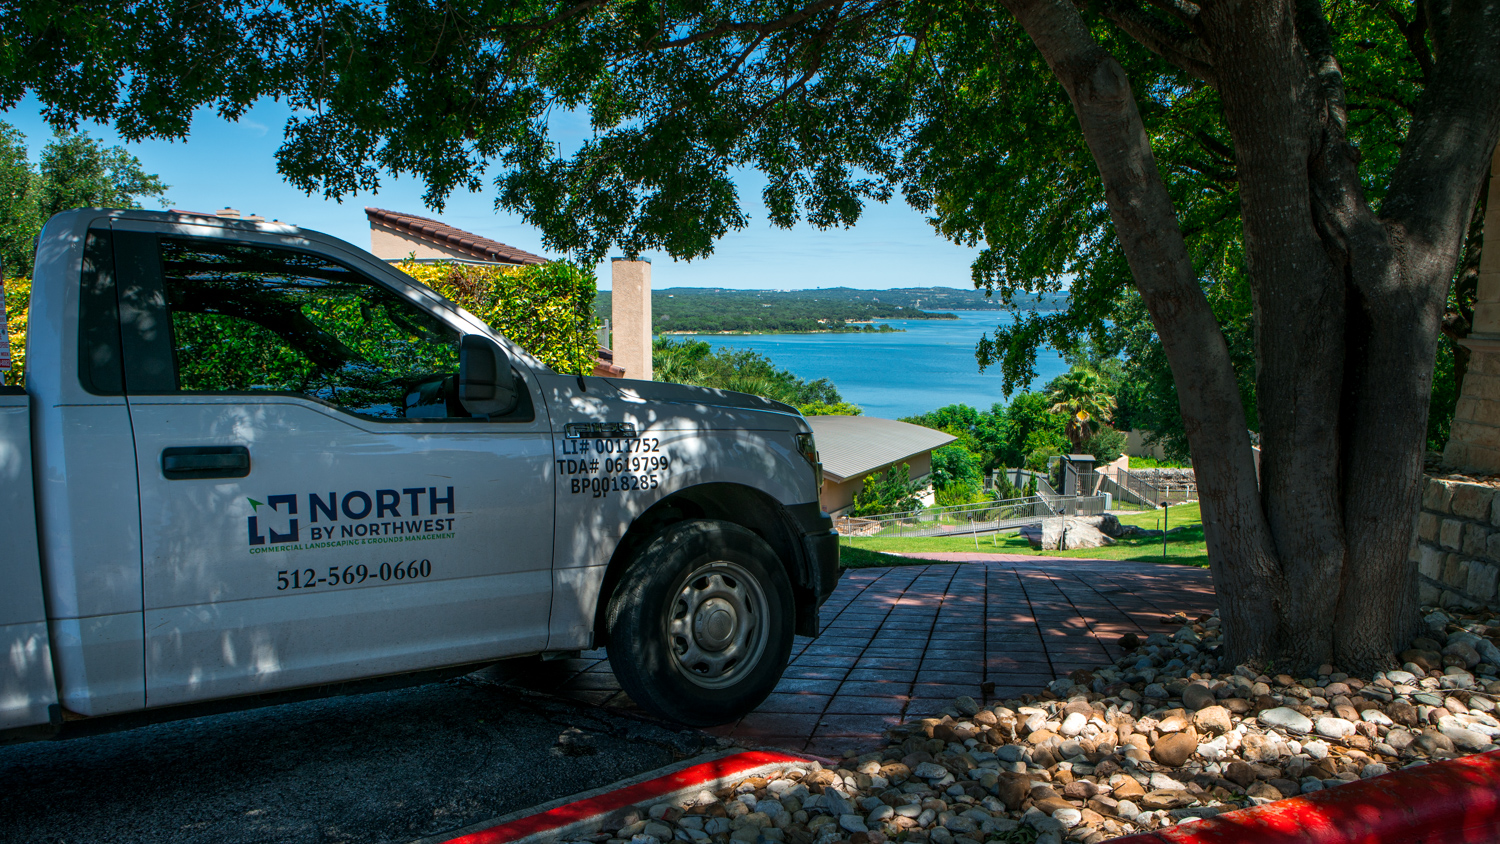 North by Northwest landscape company truck at apartment complex